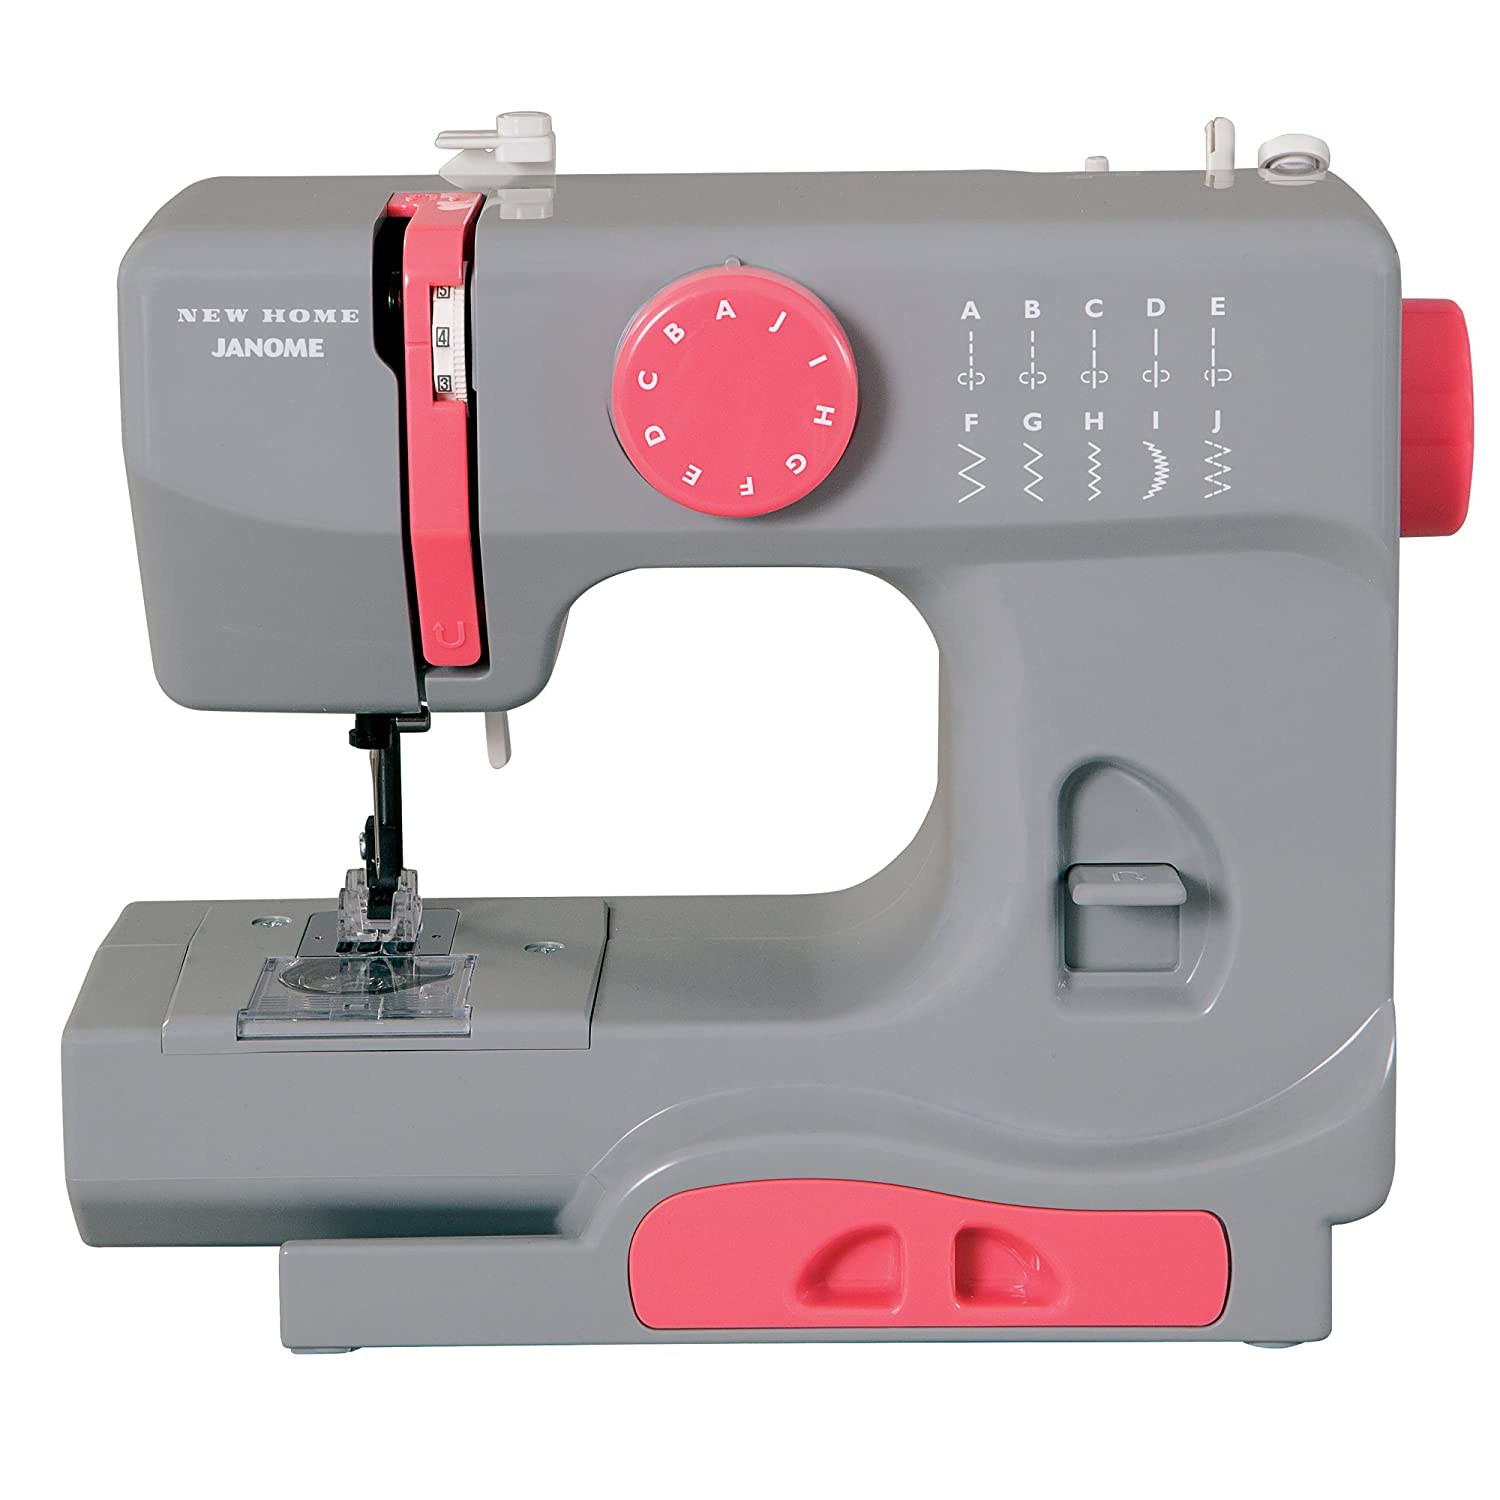 Janome New Home Portable Sewing Machine, Graceful Gray: Amazon.co.uk:  Kitchen & Home